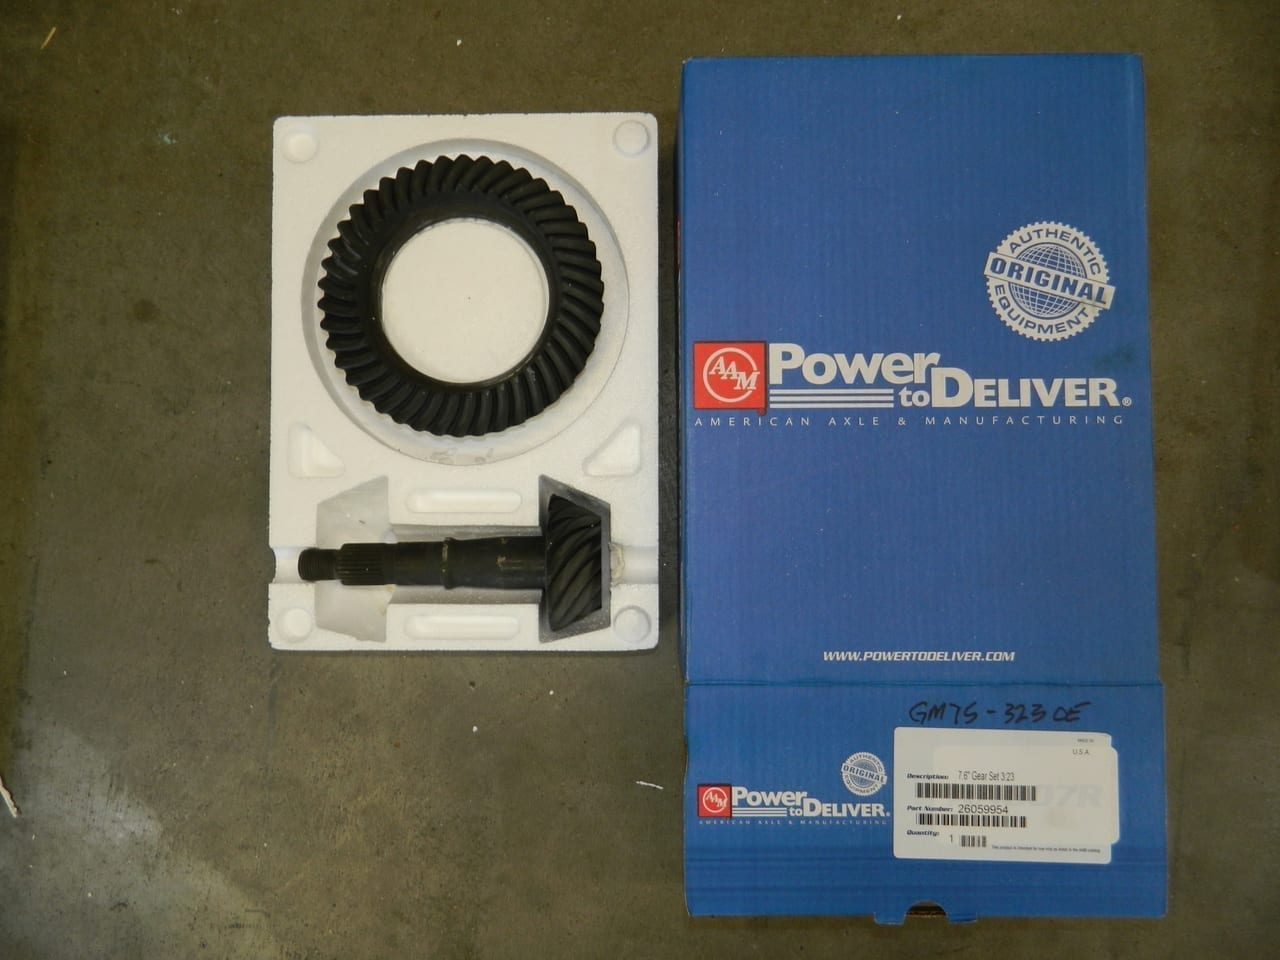 GM7.5-323 OEM AAM Ring & Pinion 10 Bolt Gear Set 7.5/7.6 Chevy S10 Camaro